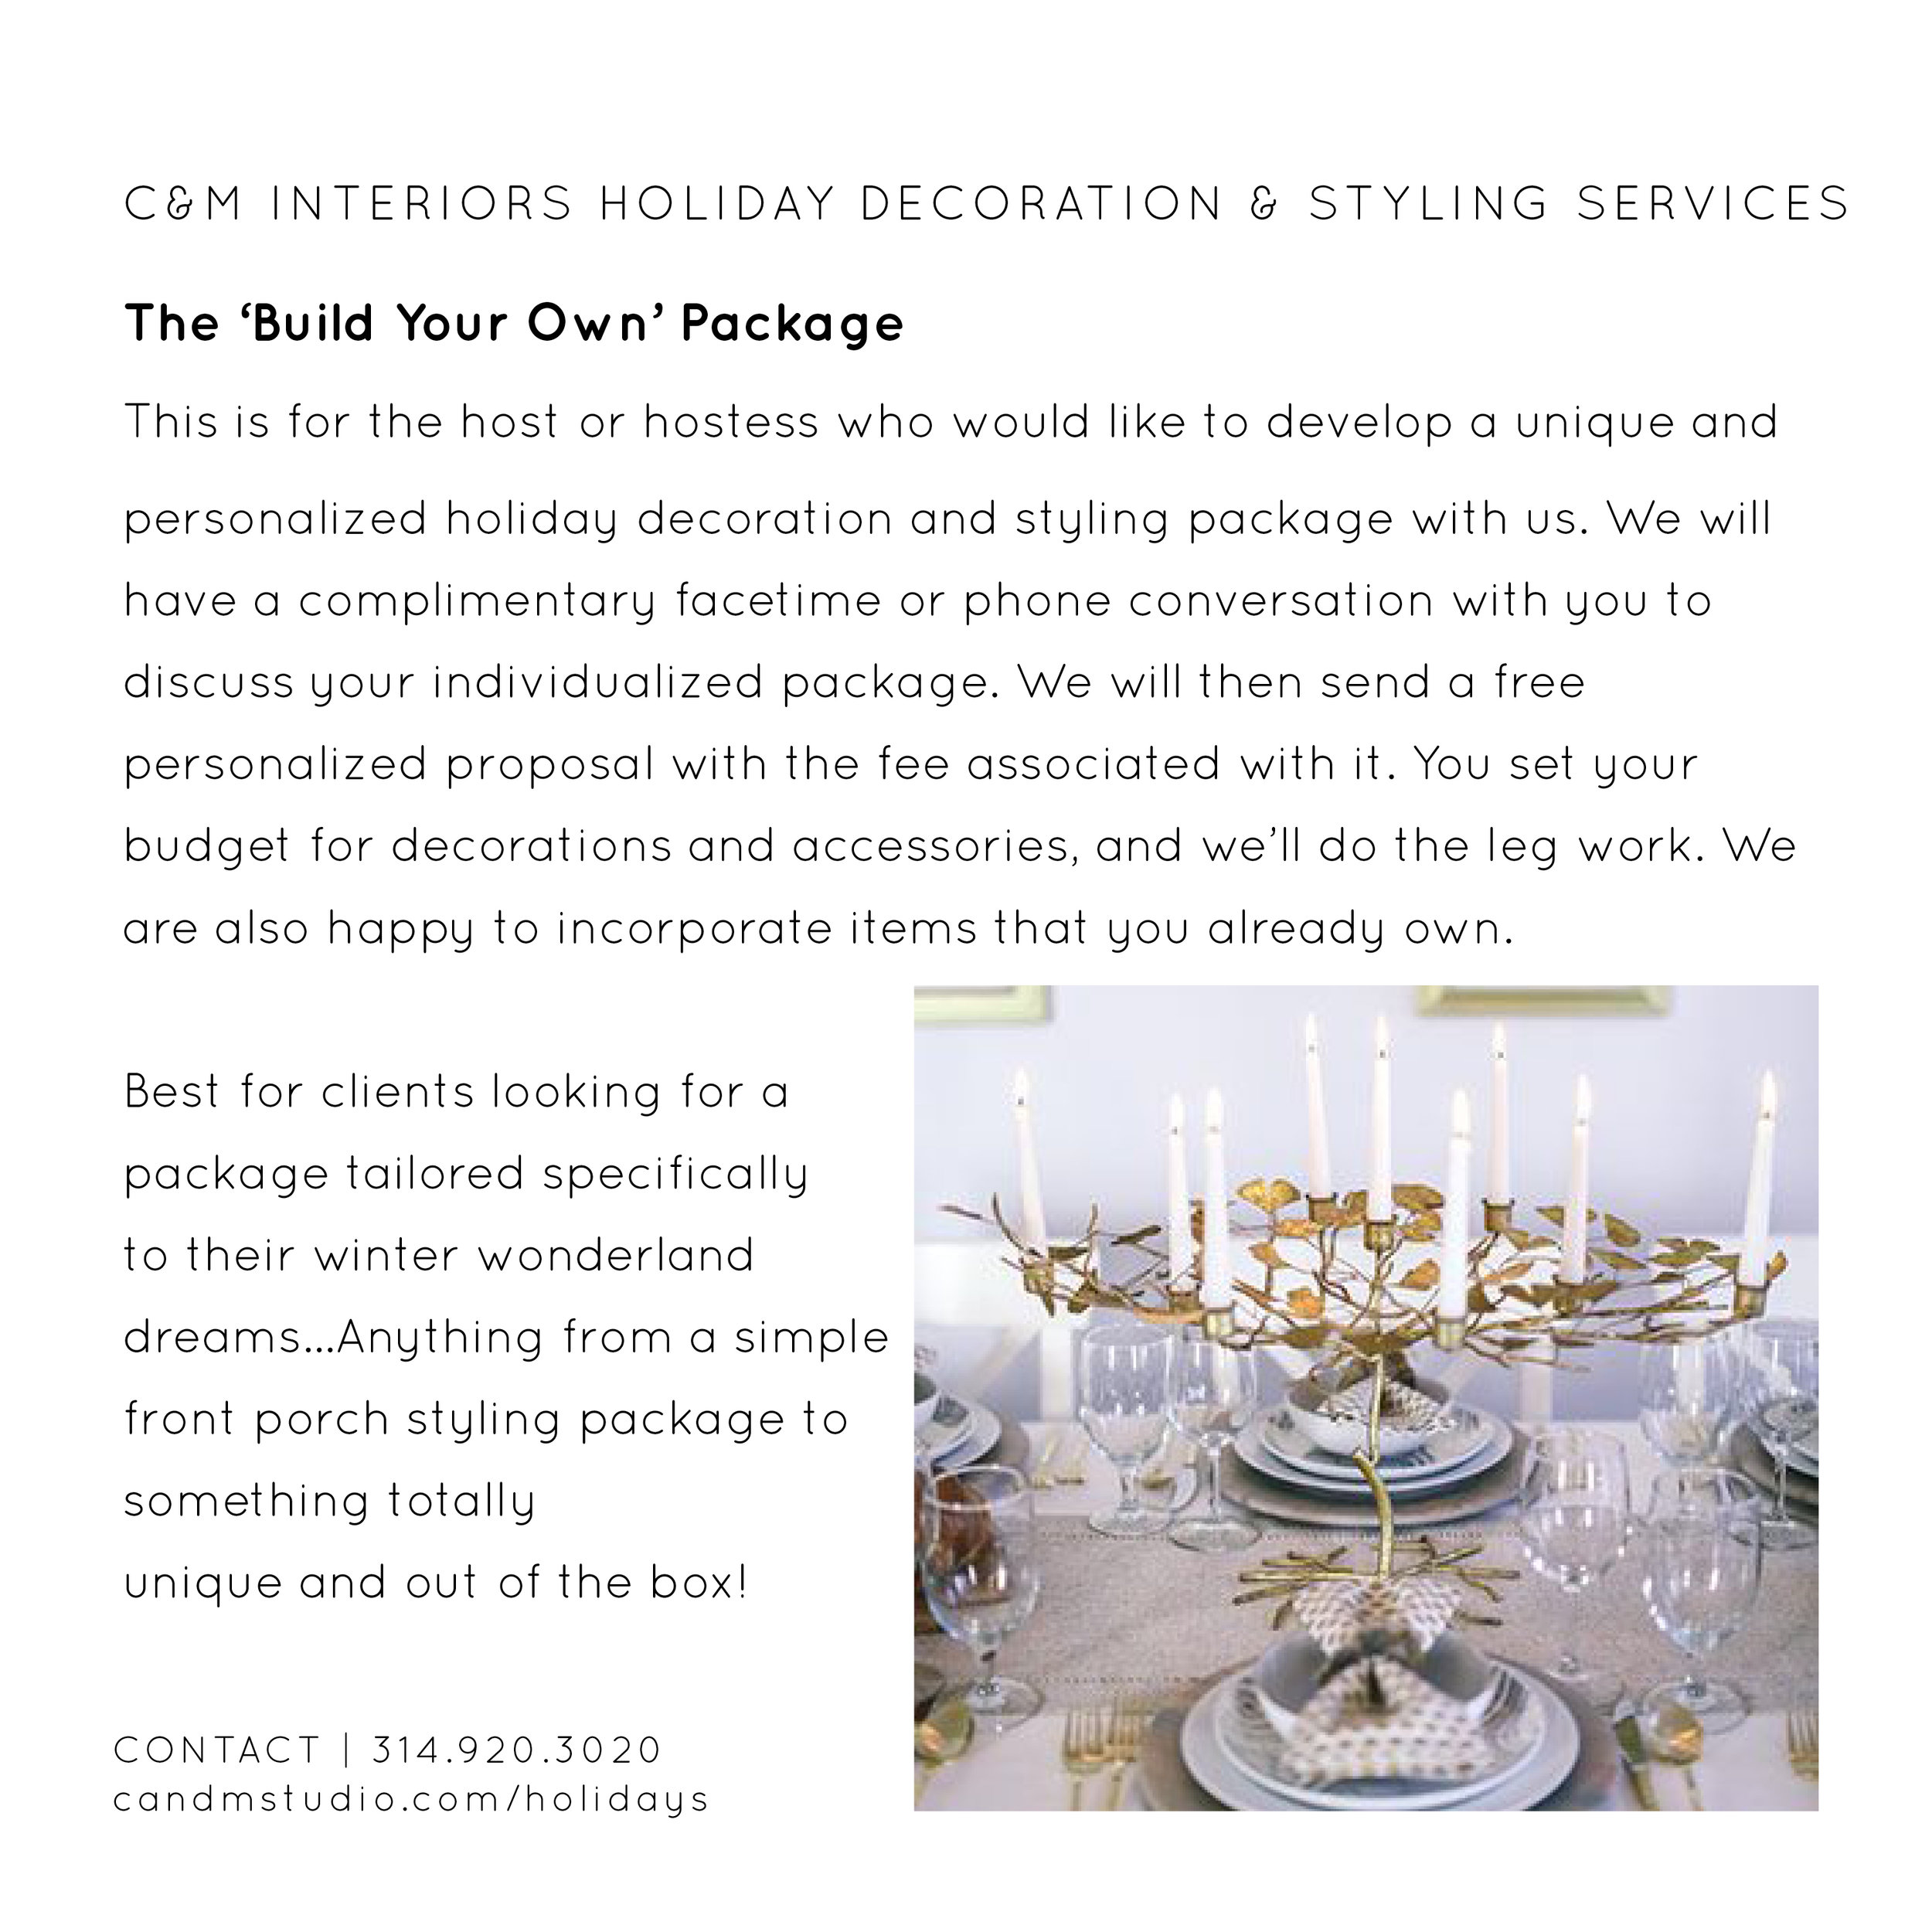 C&M Interiors Holiday Decoration and Styling Services 20176.jpg